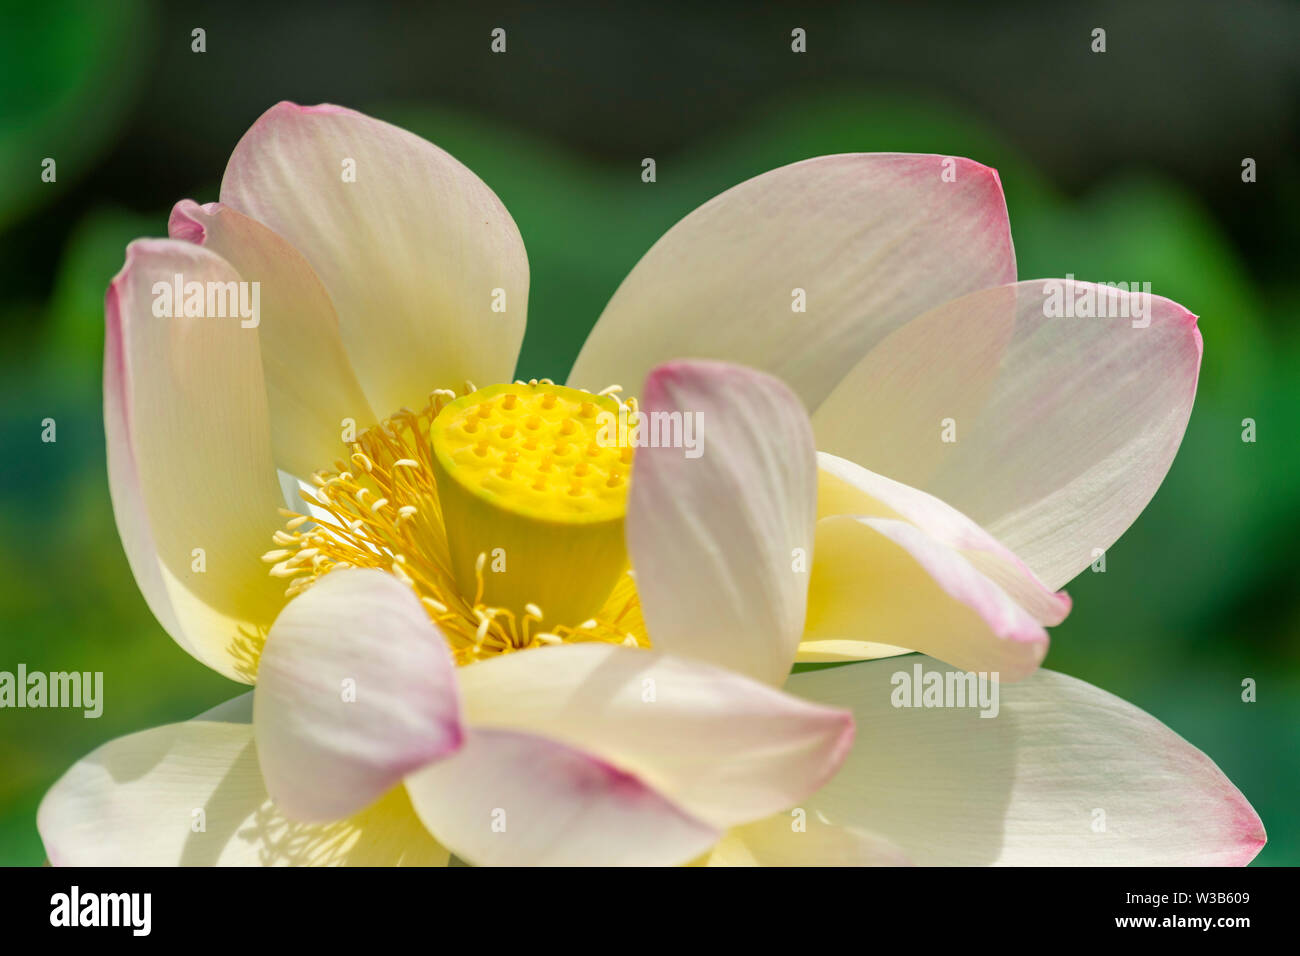 Small Flower Seeds Stock Photos Amp Small Flower Seeds Stock